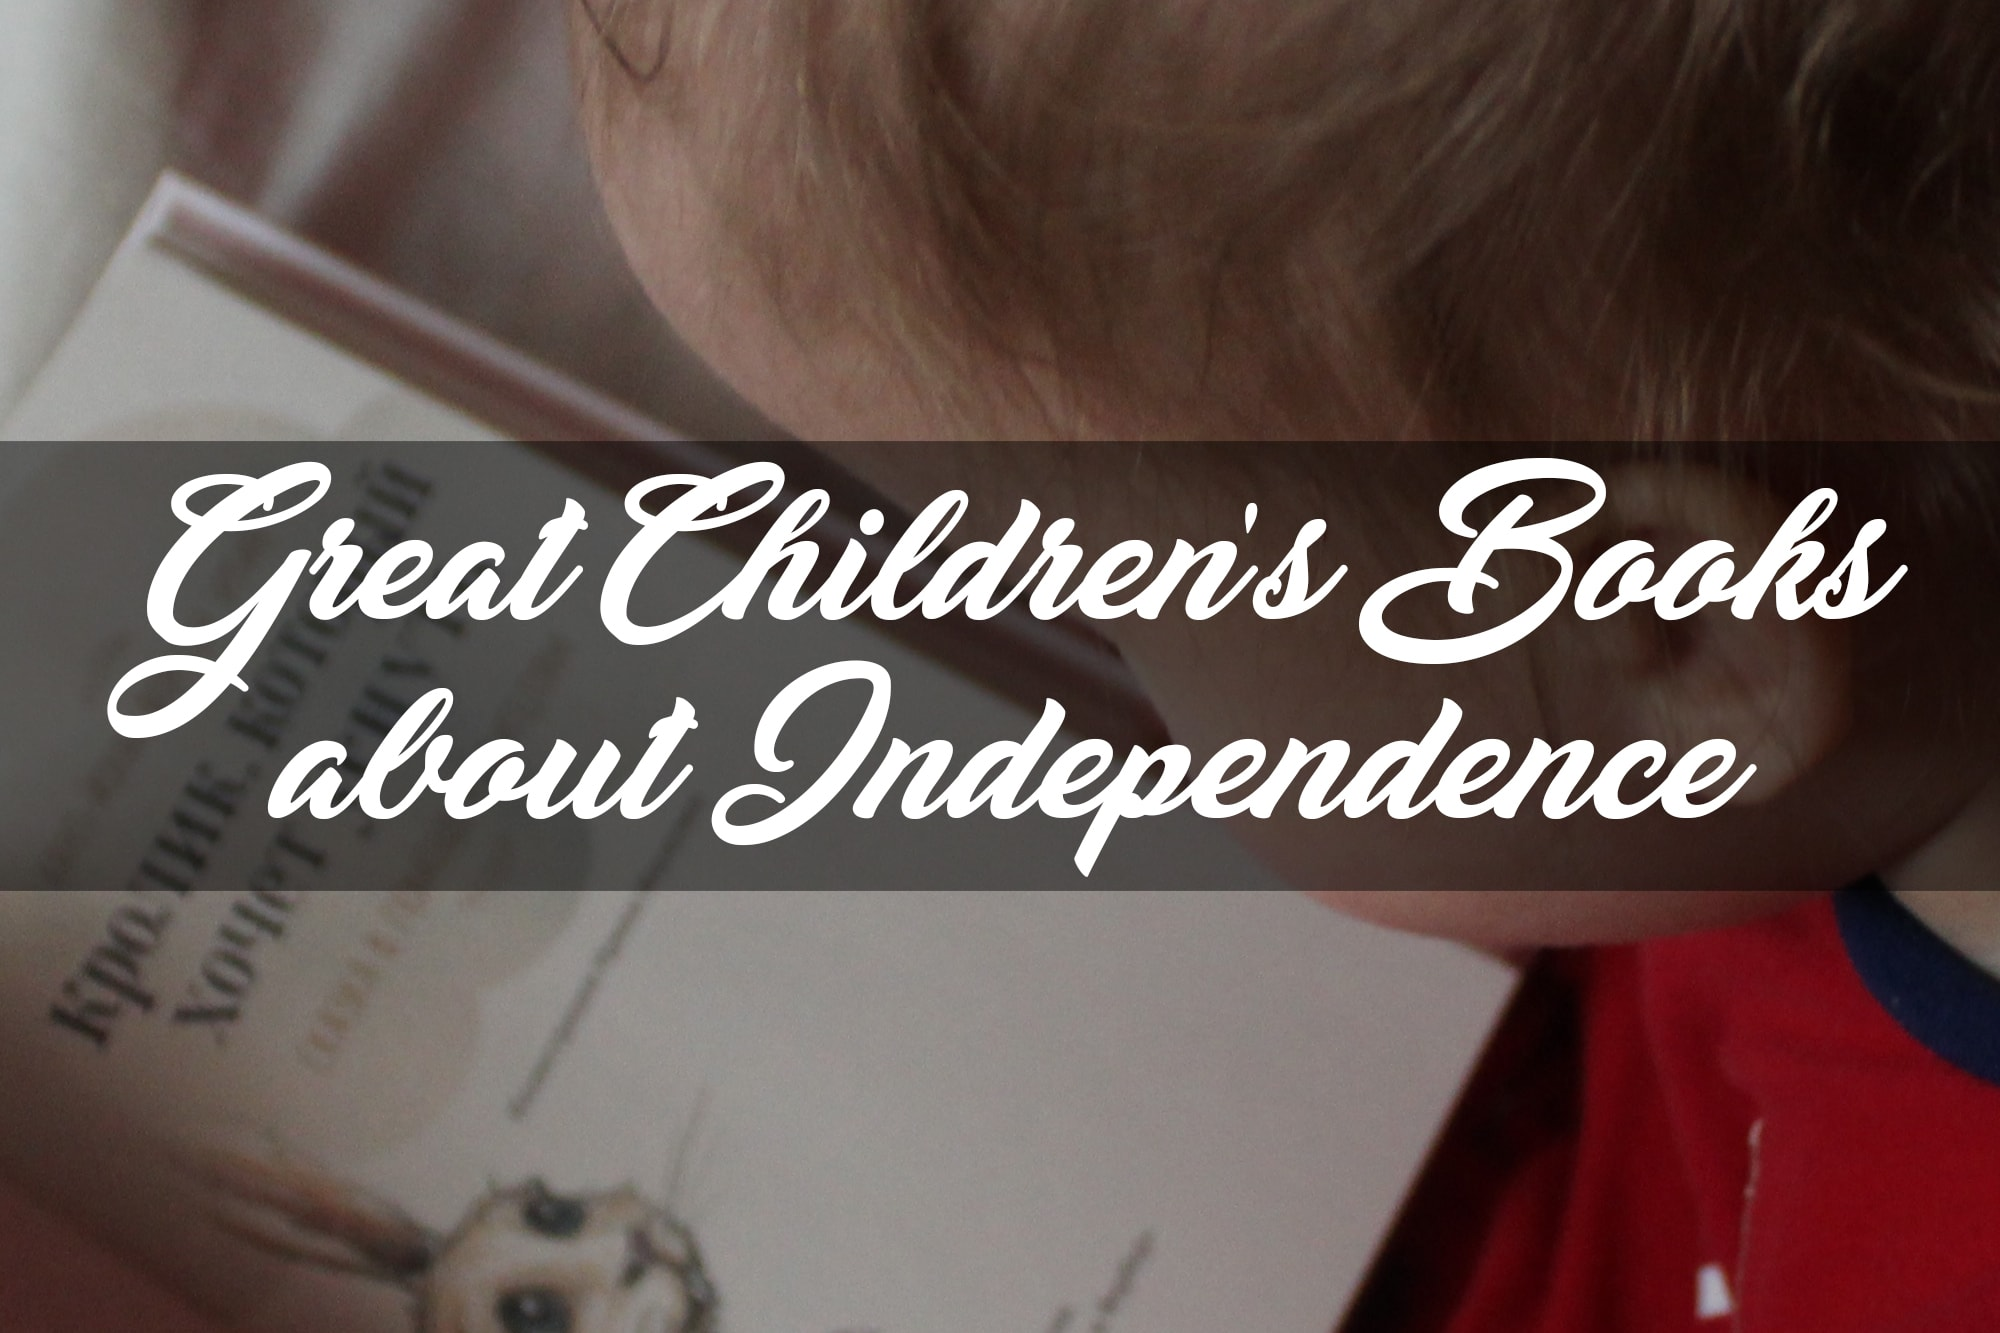 great childrens books for independence